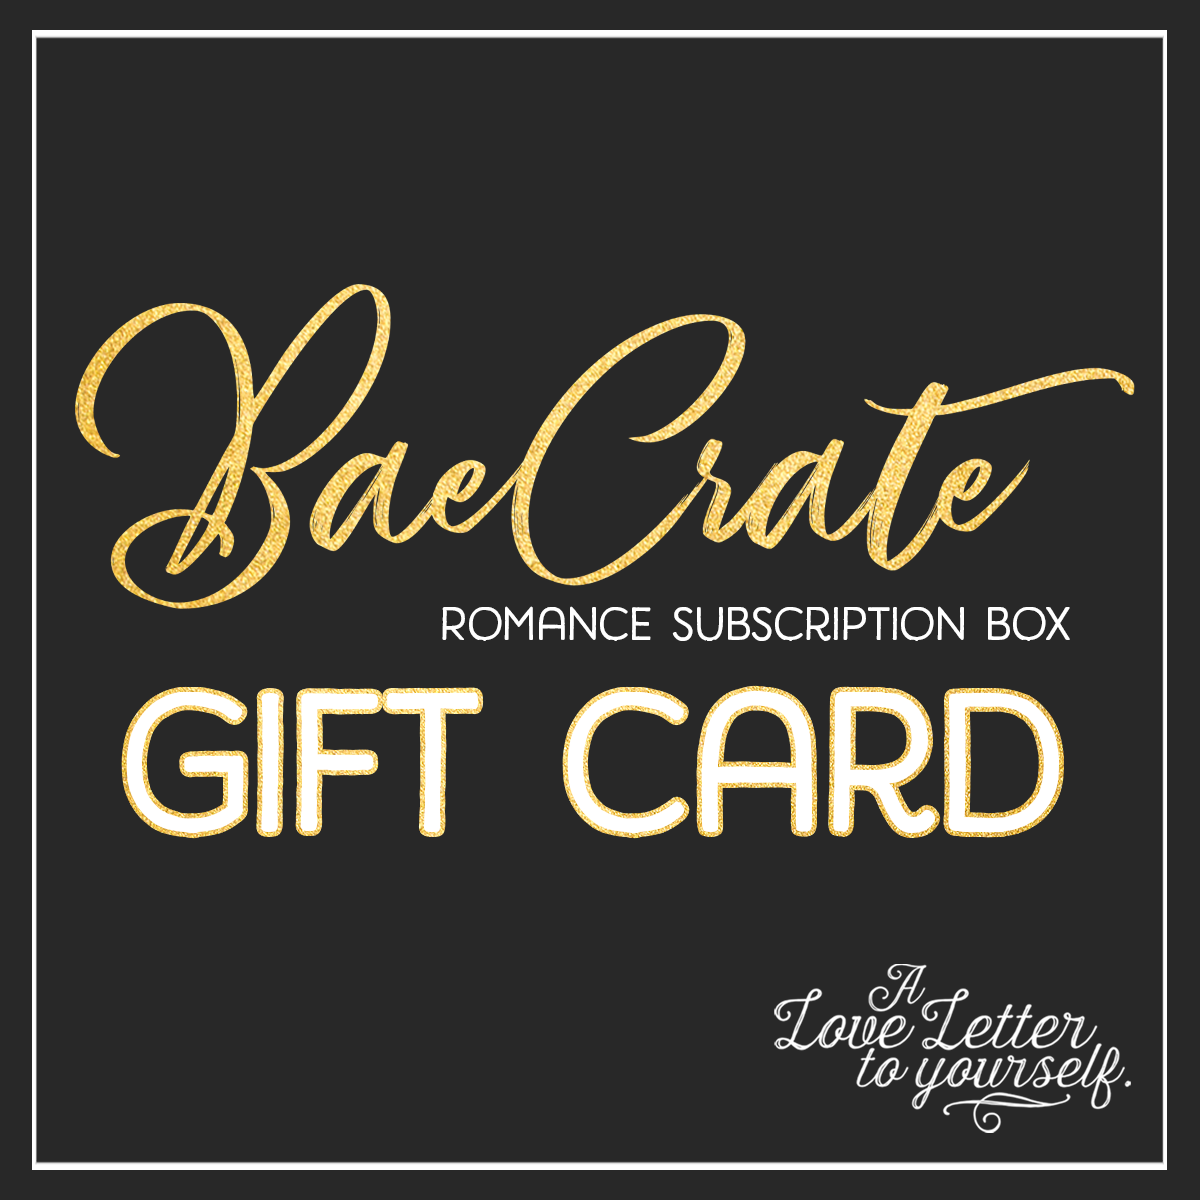 Bae Crate Gift Card